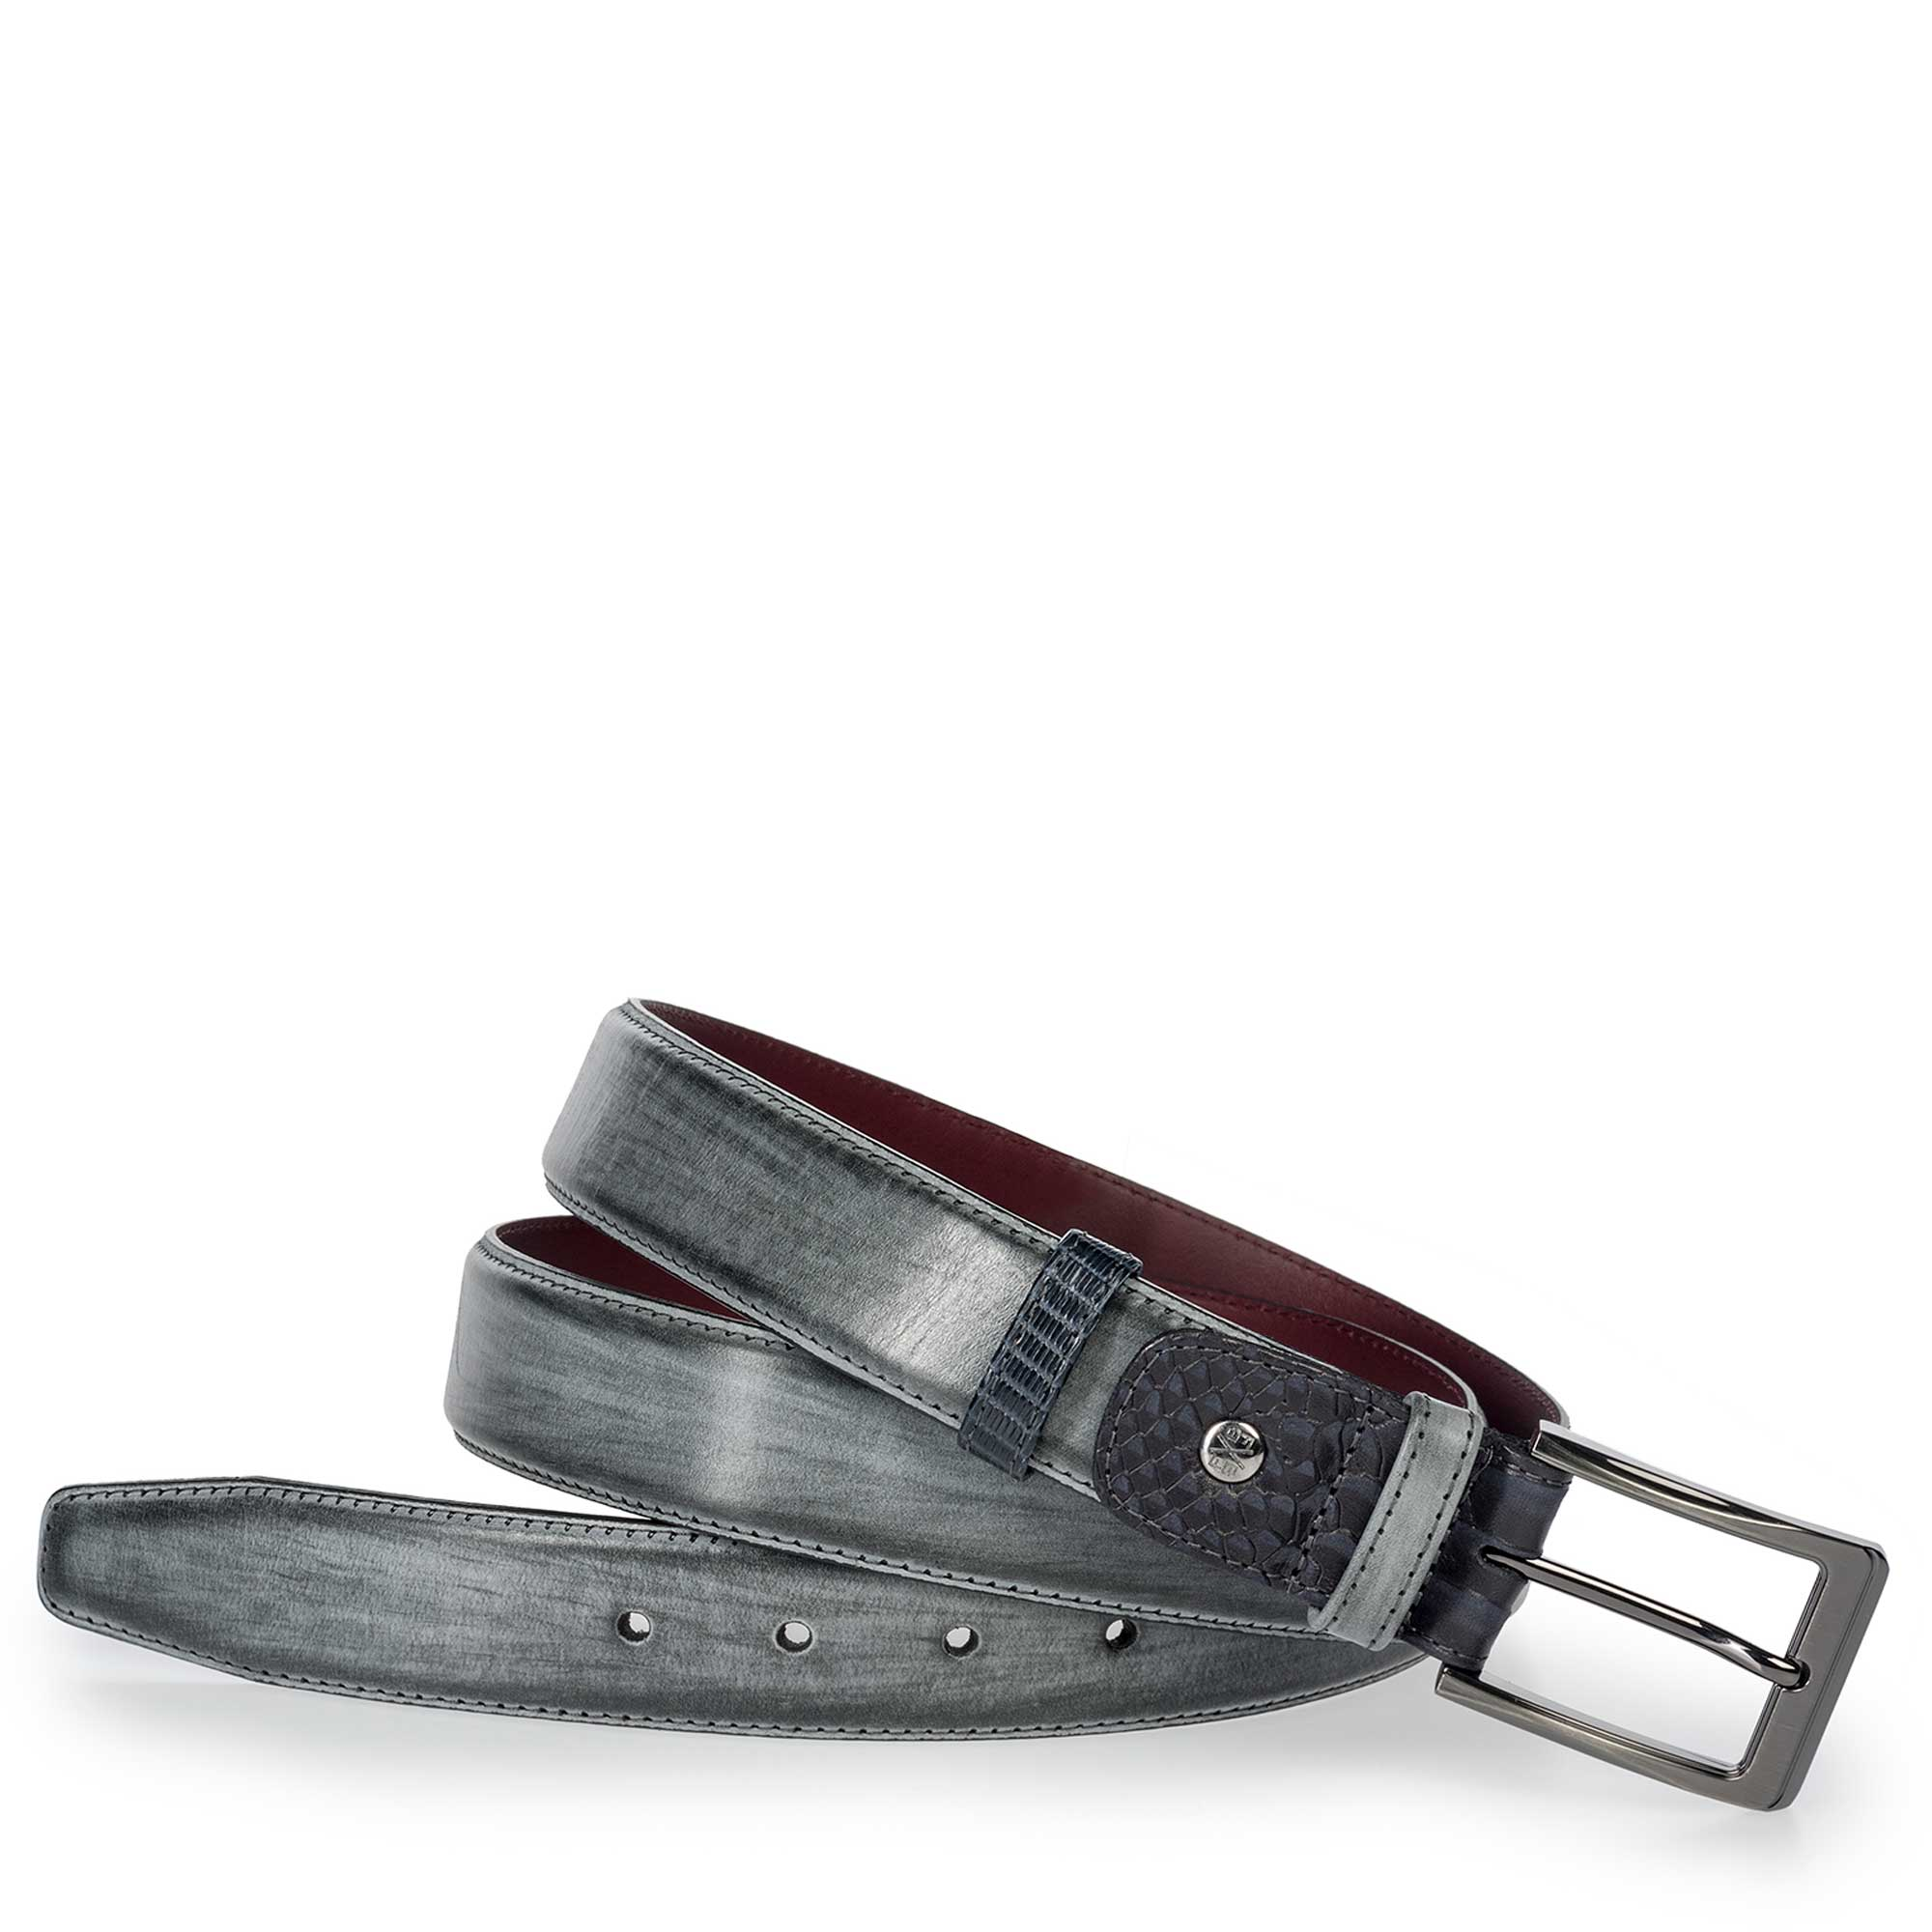 75160/01 - Anthracite grey leather belt